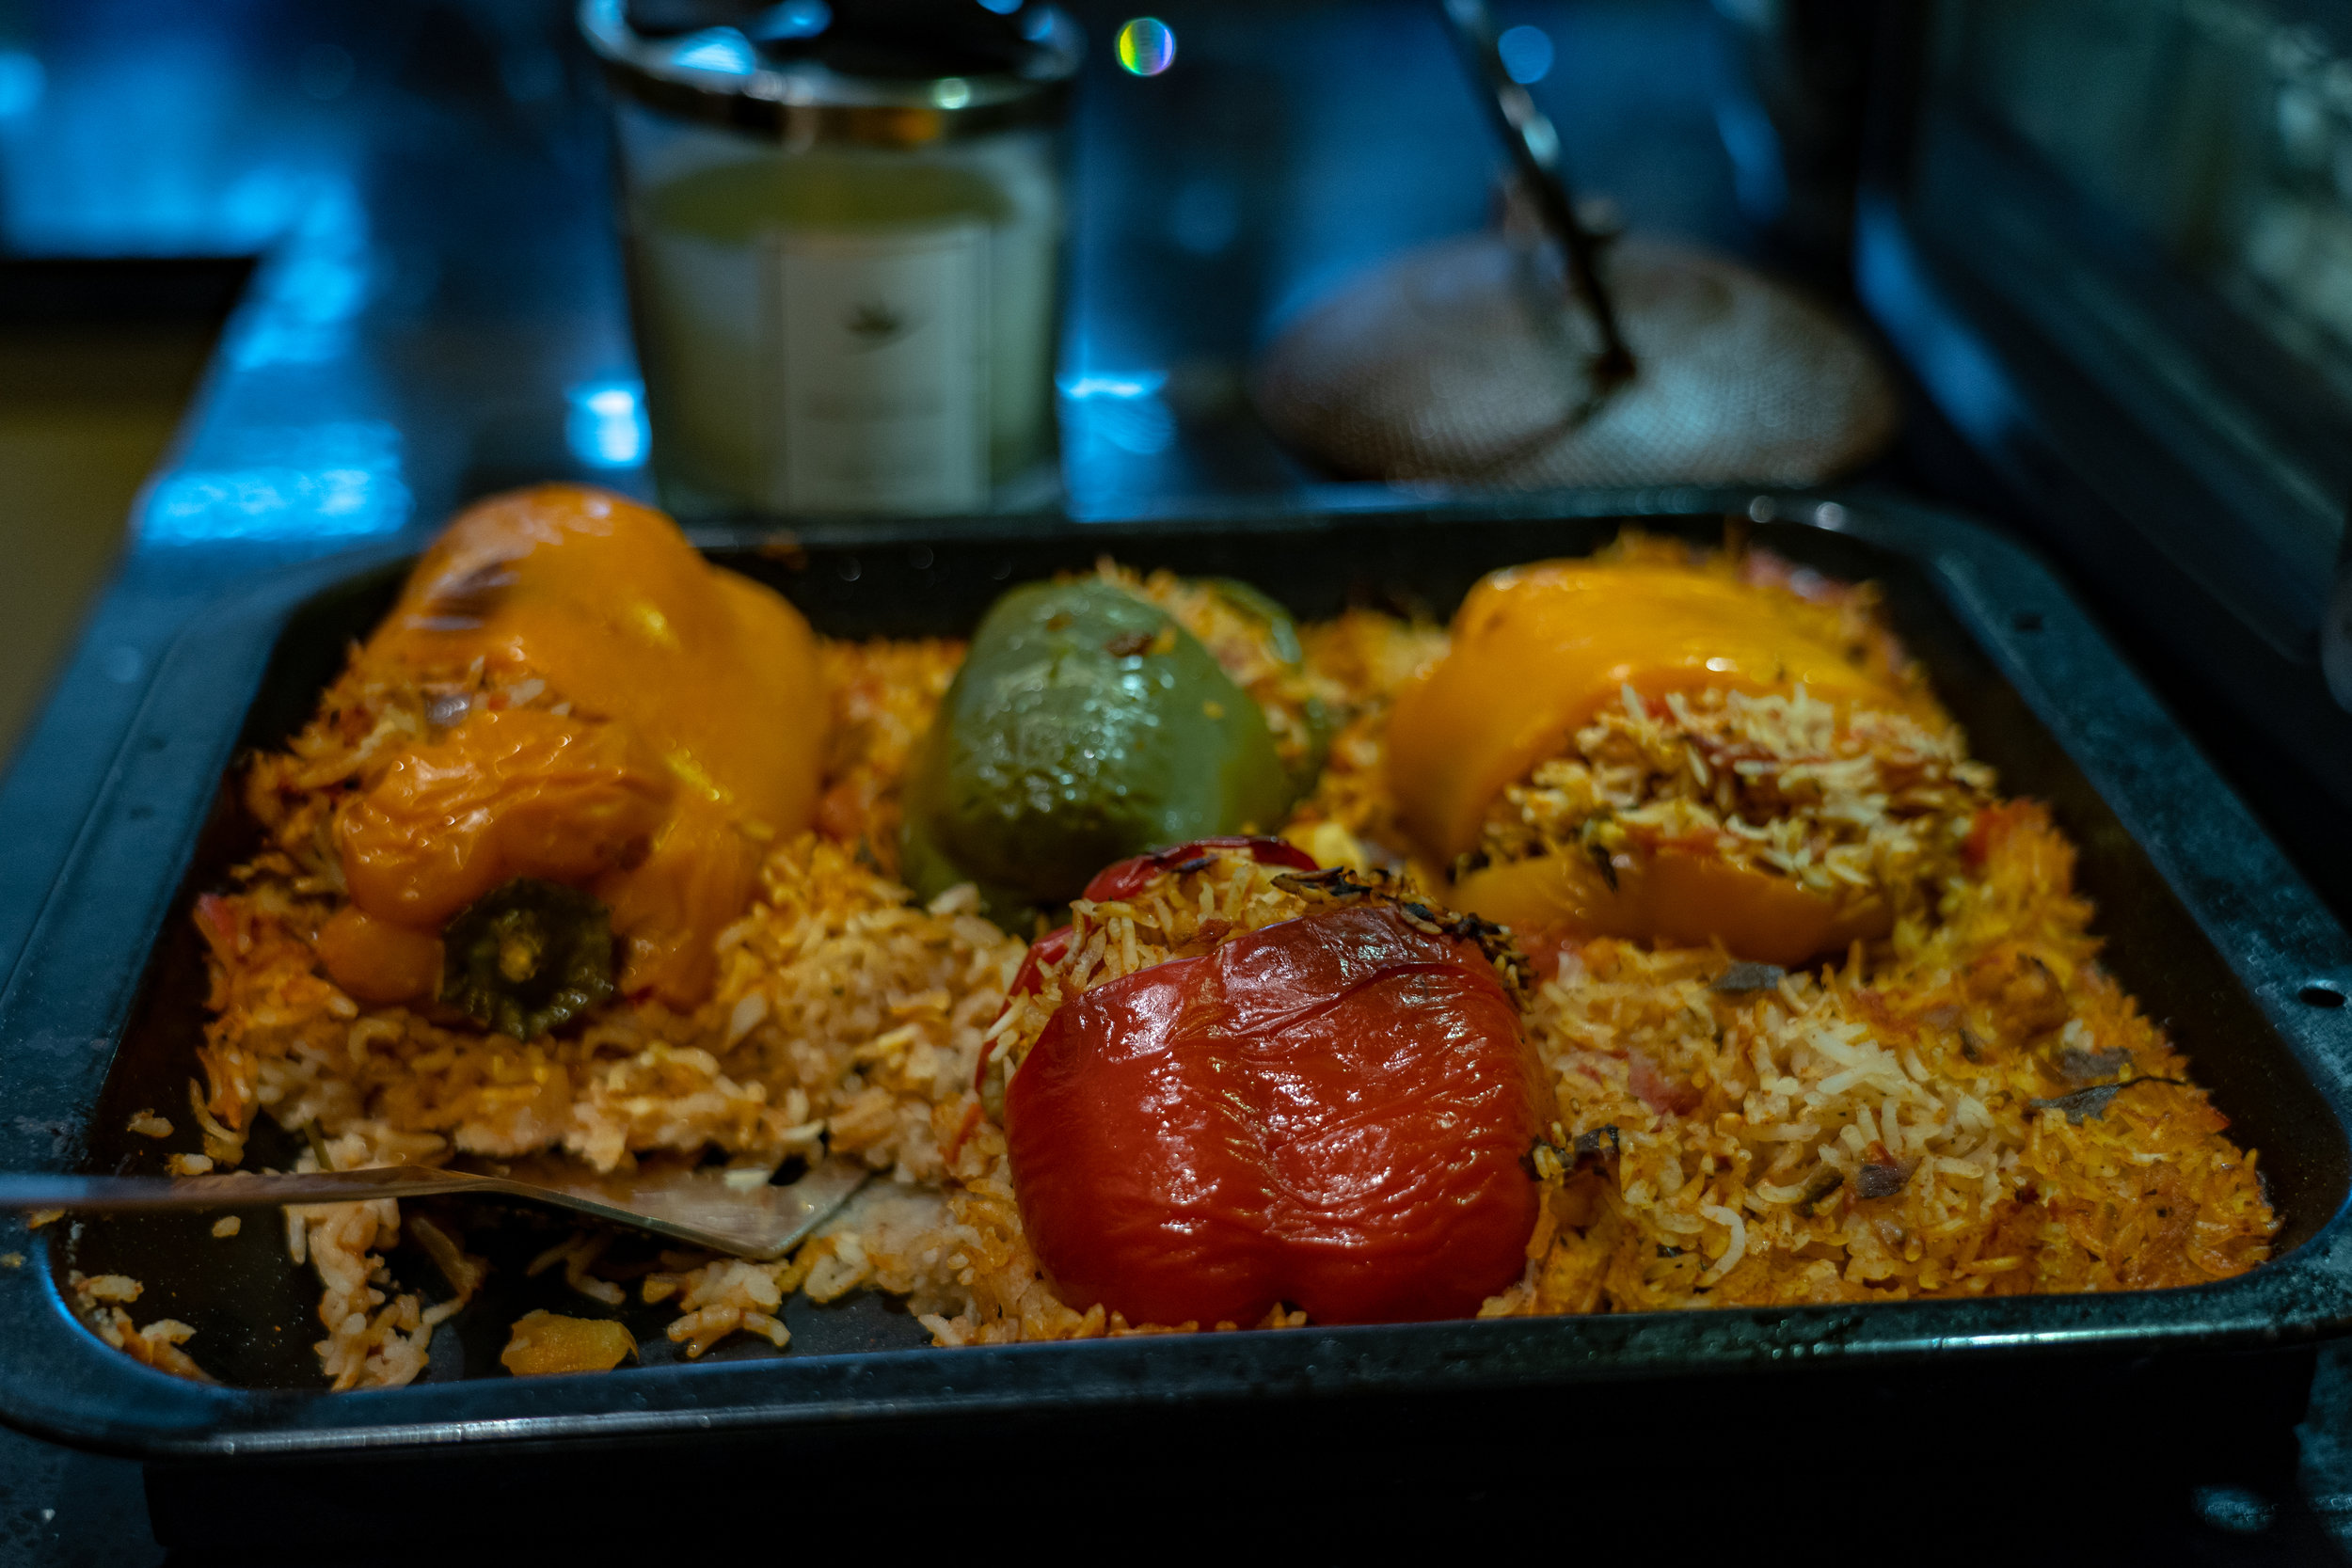 Stuffed peppers can be modified to suit several diets, try them with Quorn chicken pieces for vegetarian visitors. Photography by Alexander Wenk.